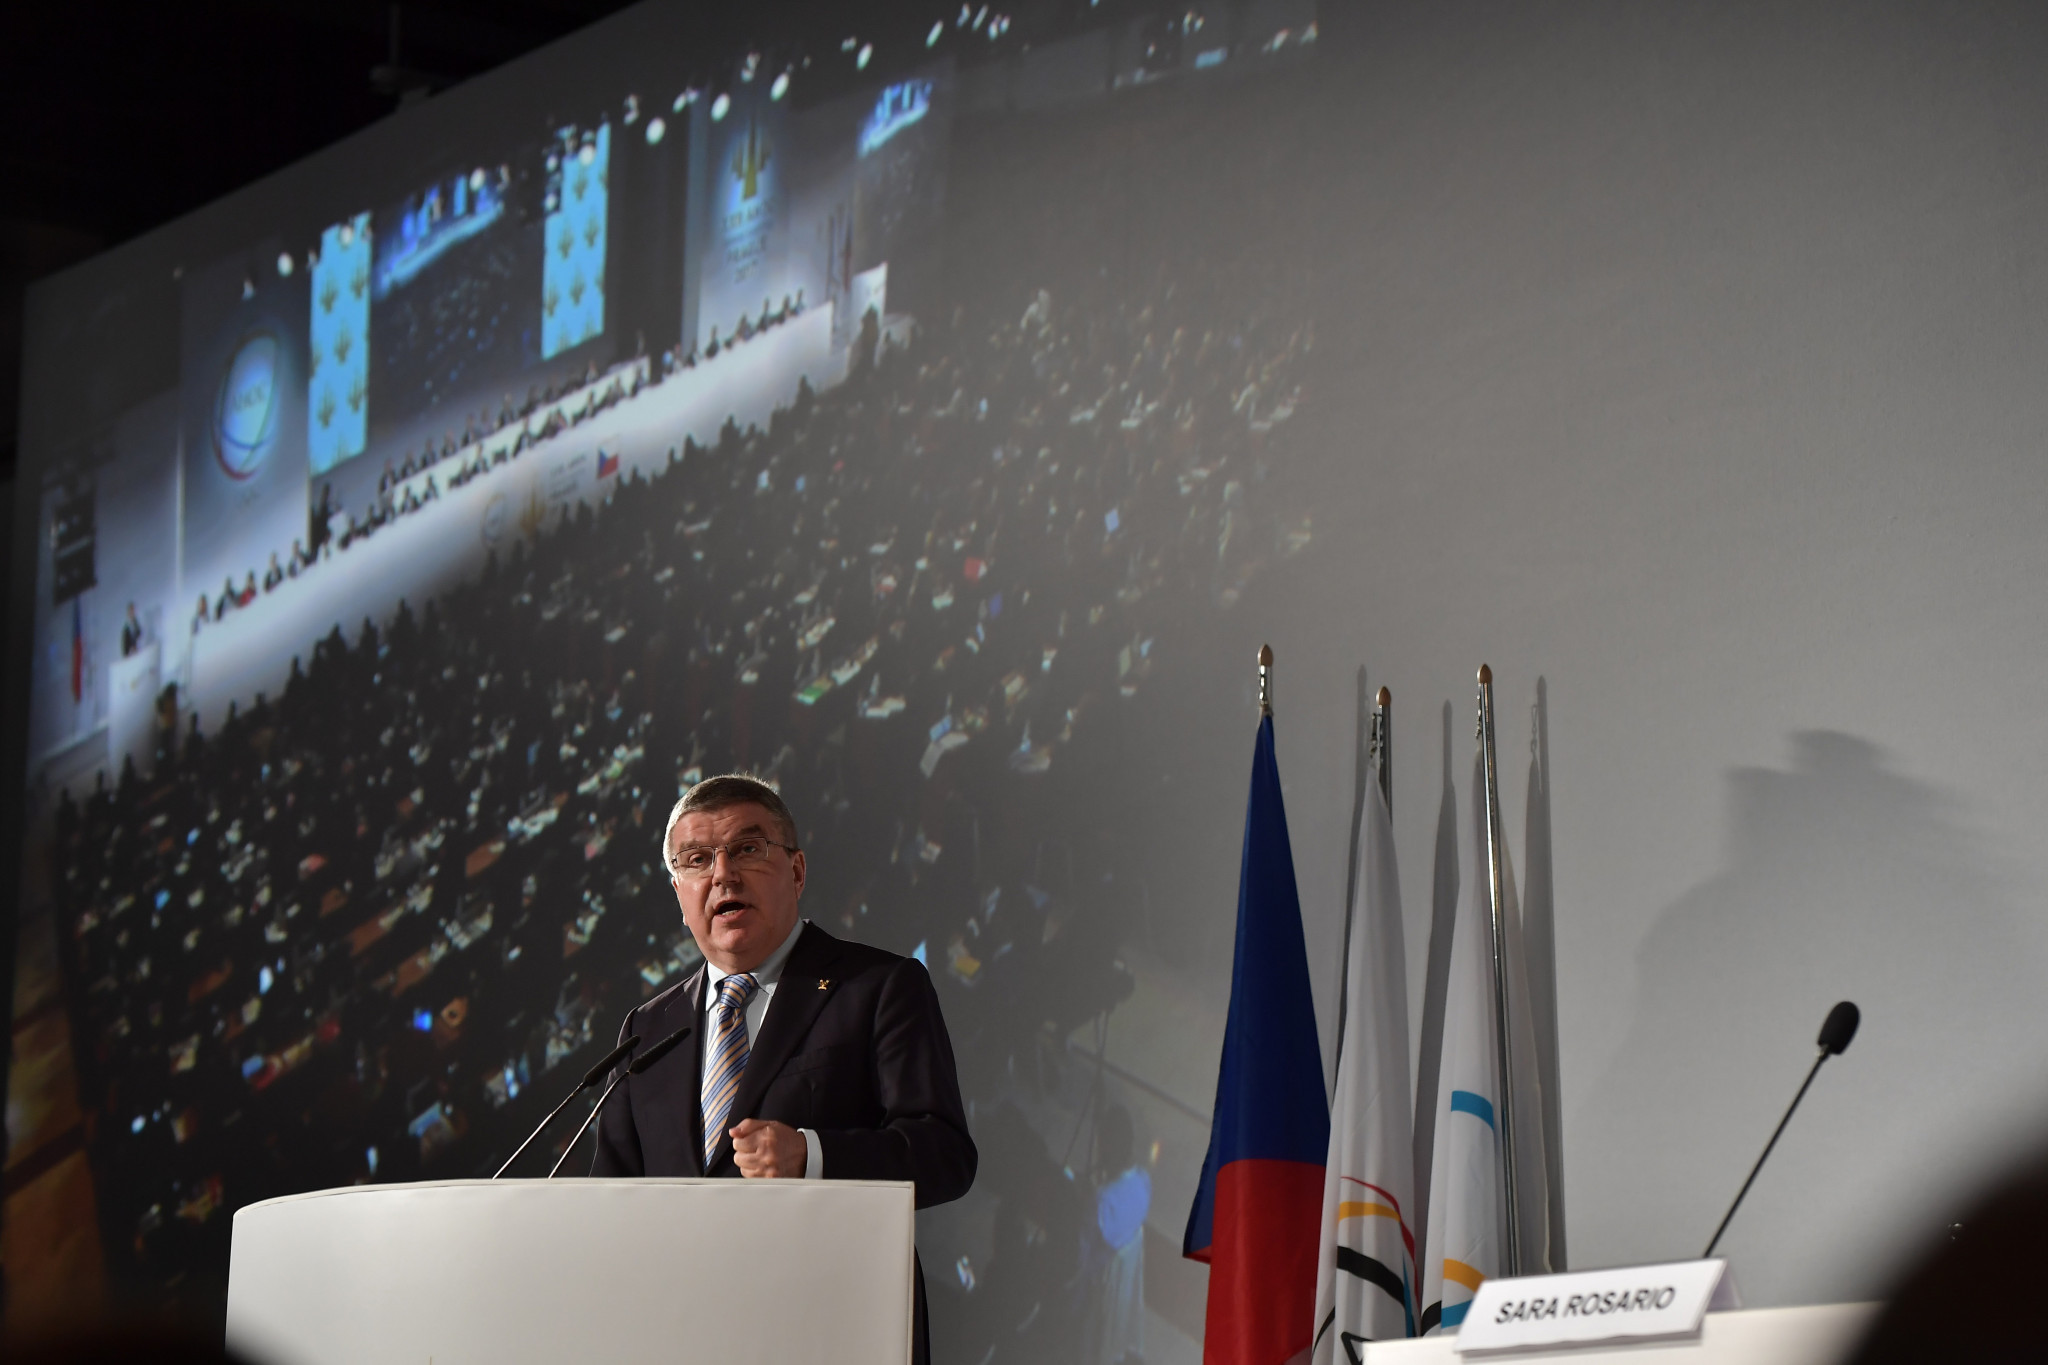 Thomas Bach delivered a keynote address at the ANOC General Assembly meeting today ©Getty Images